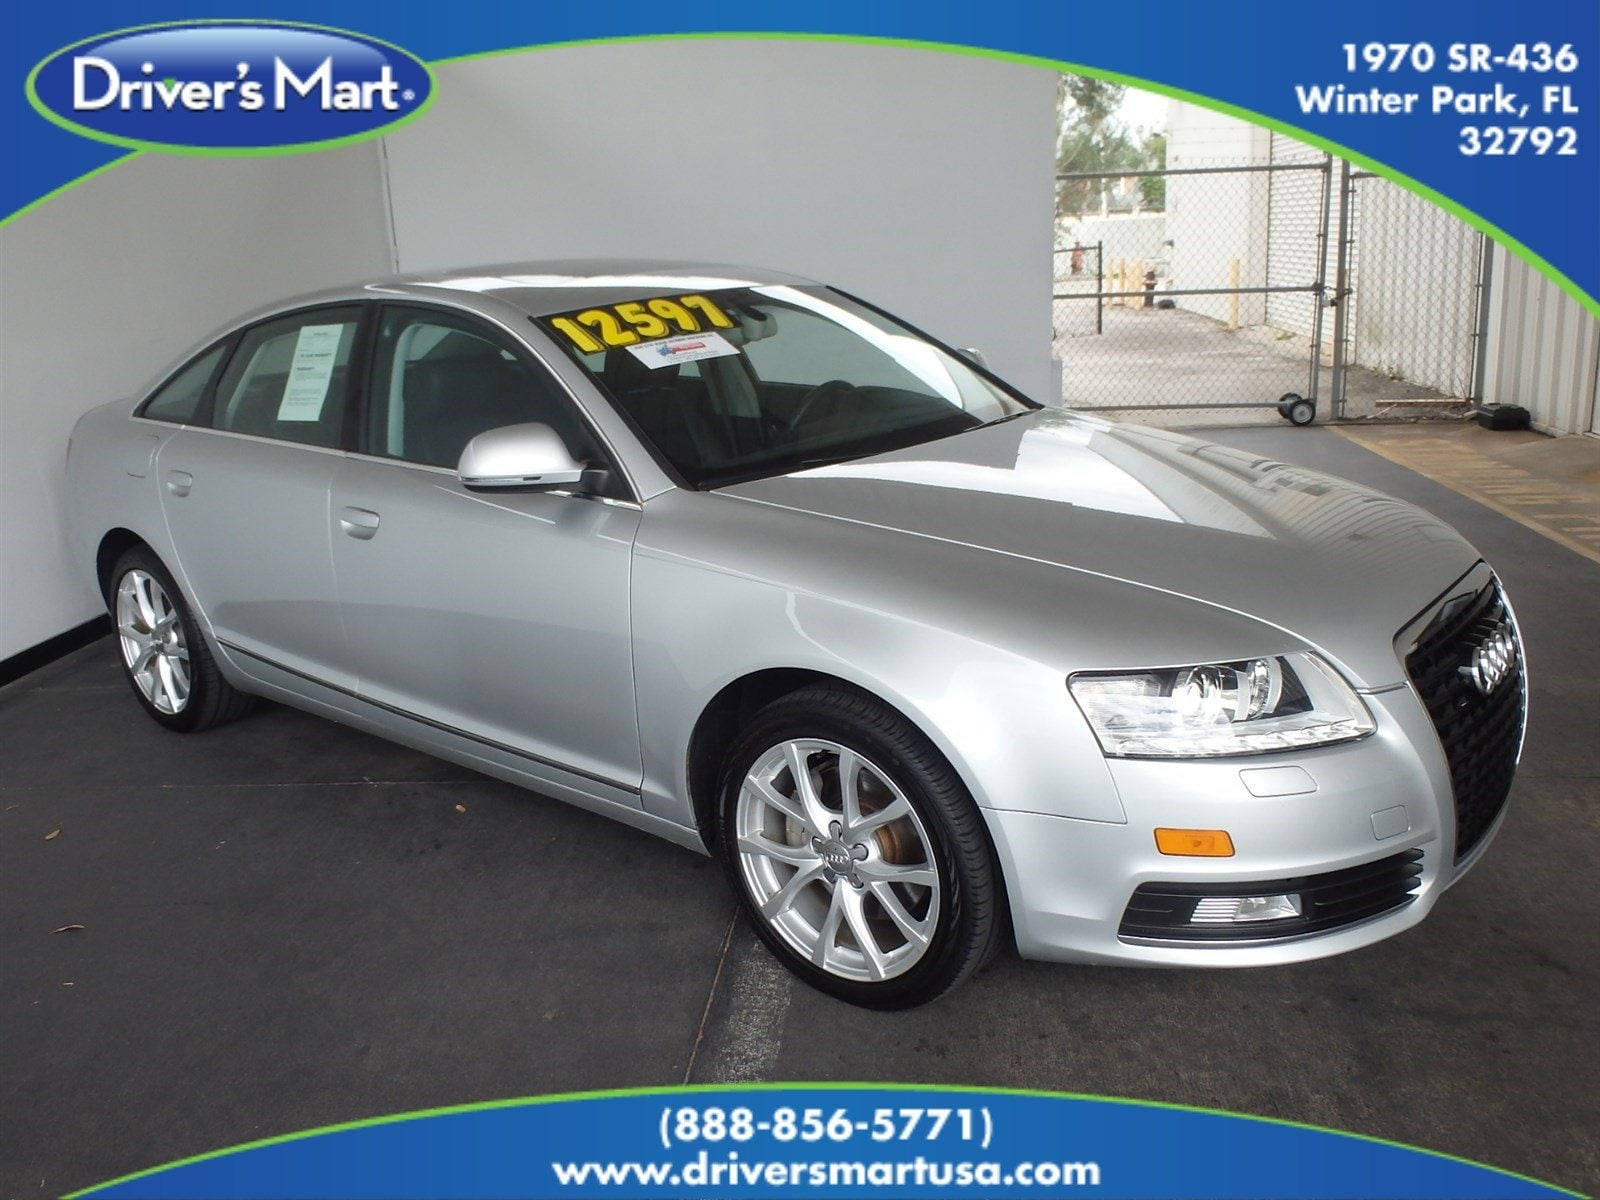 driver u0027s mart winter park used car dealership located near